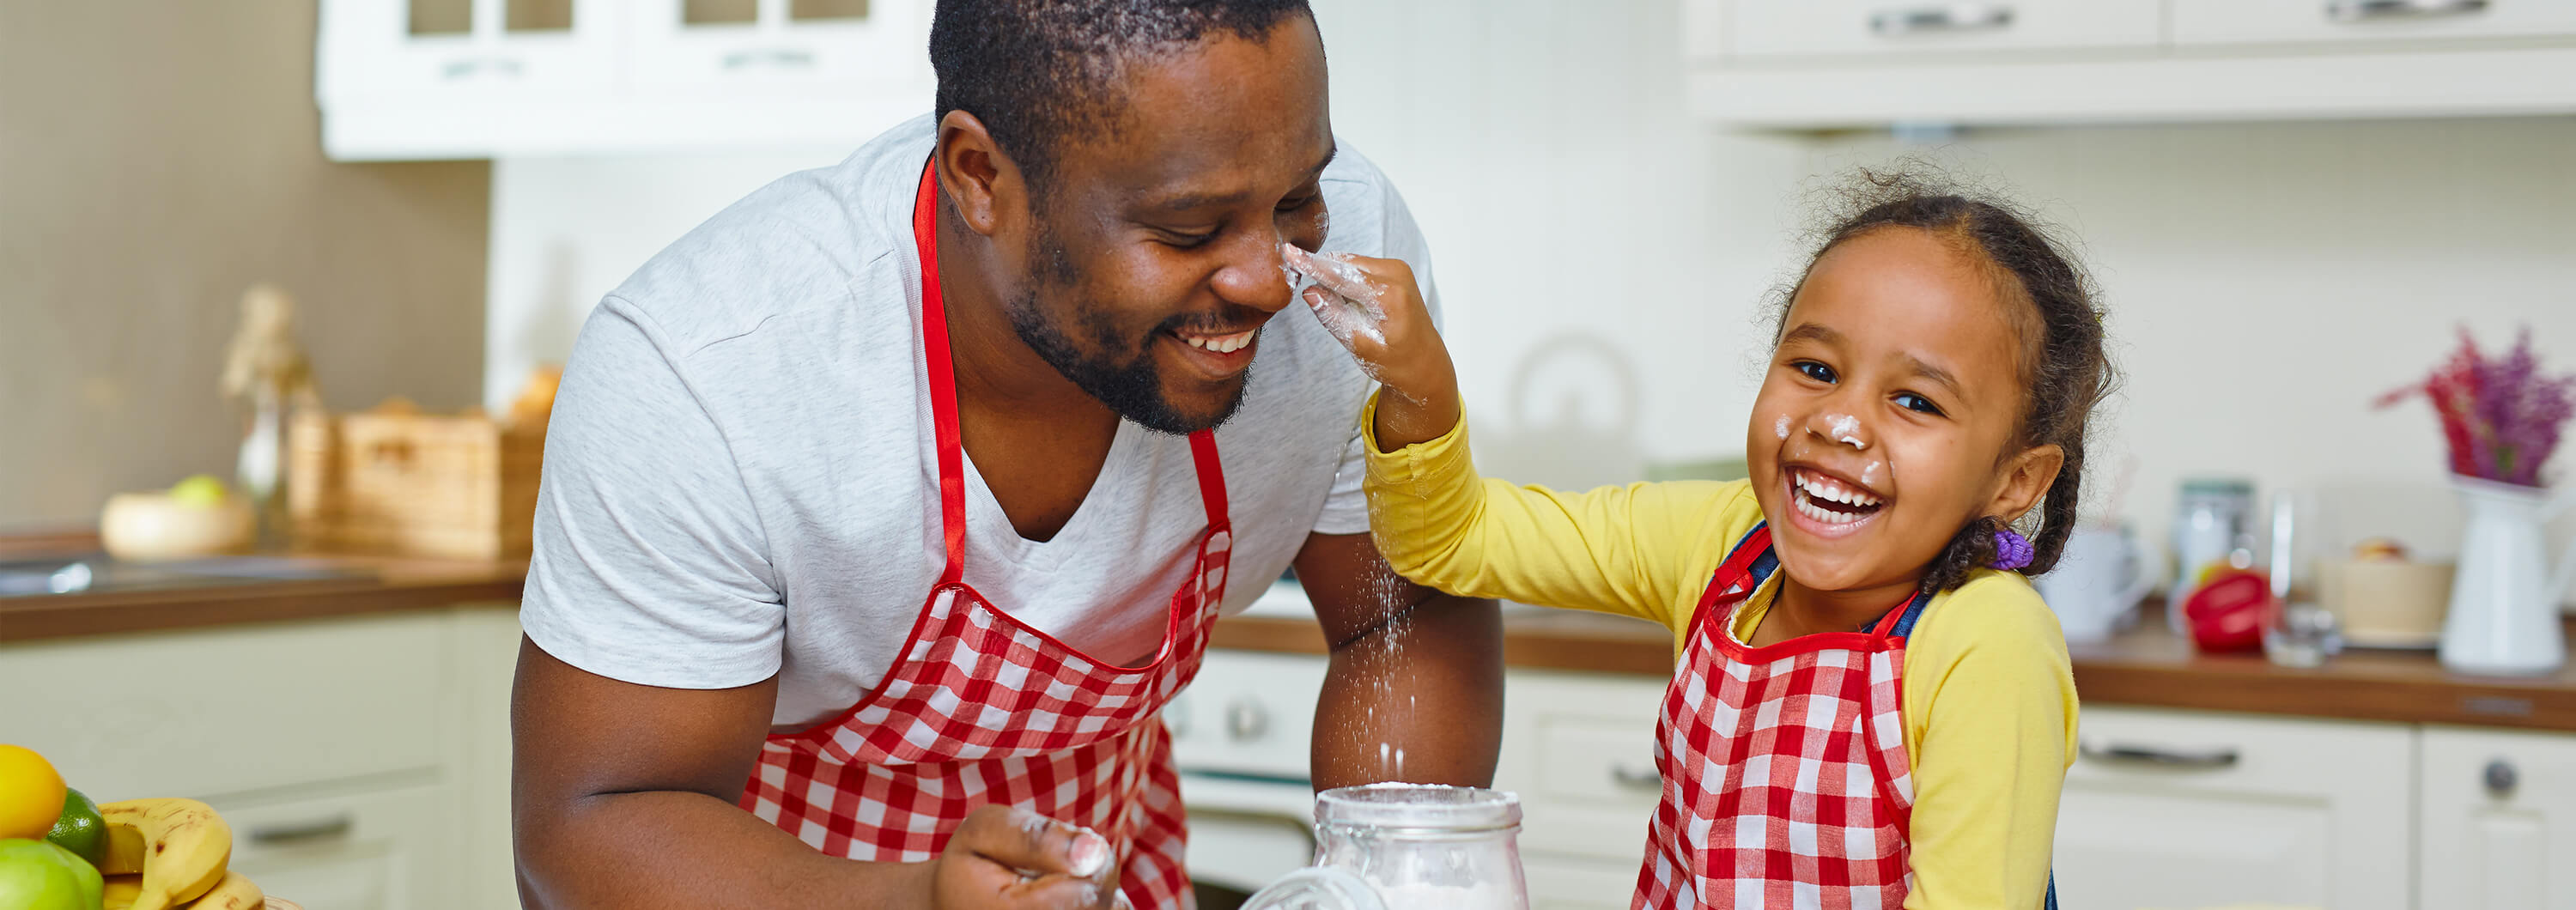 Father cooking with young daughter and laughing